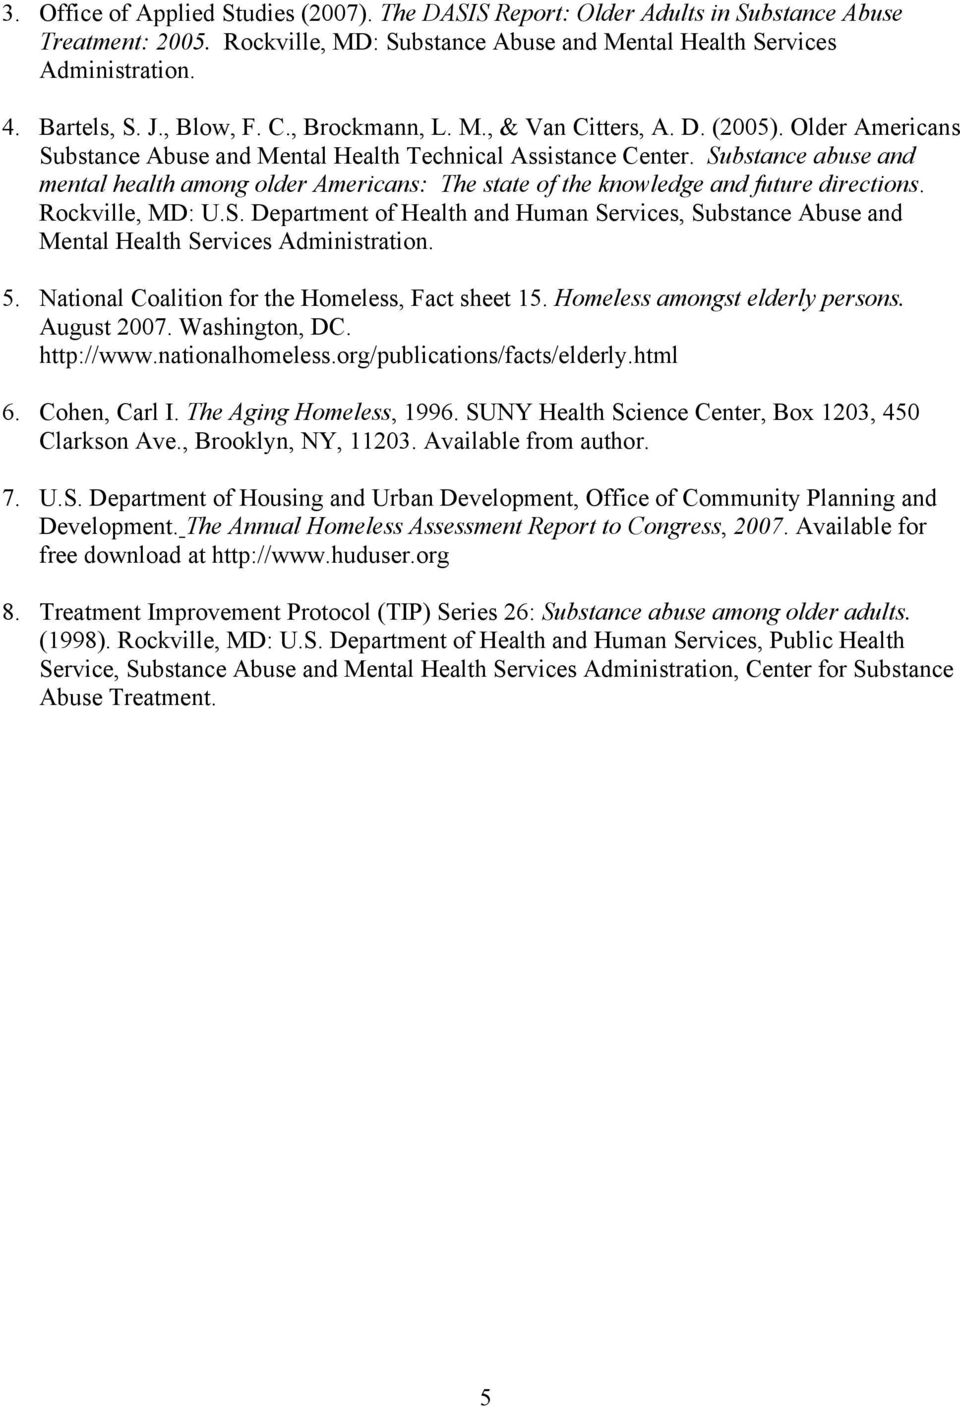 Substance abuse and mental health among older Americans: The state of the knowledge and future directions. Rockville, MD: U.S. Department of Health and Human Services, Substance Abuse and Mental Health Services Administration.